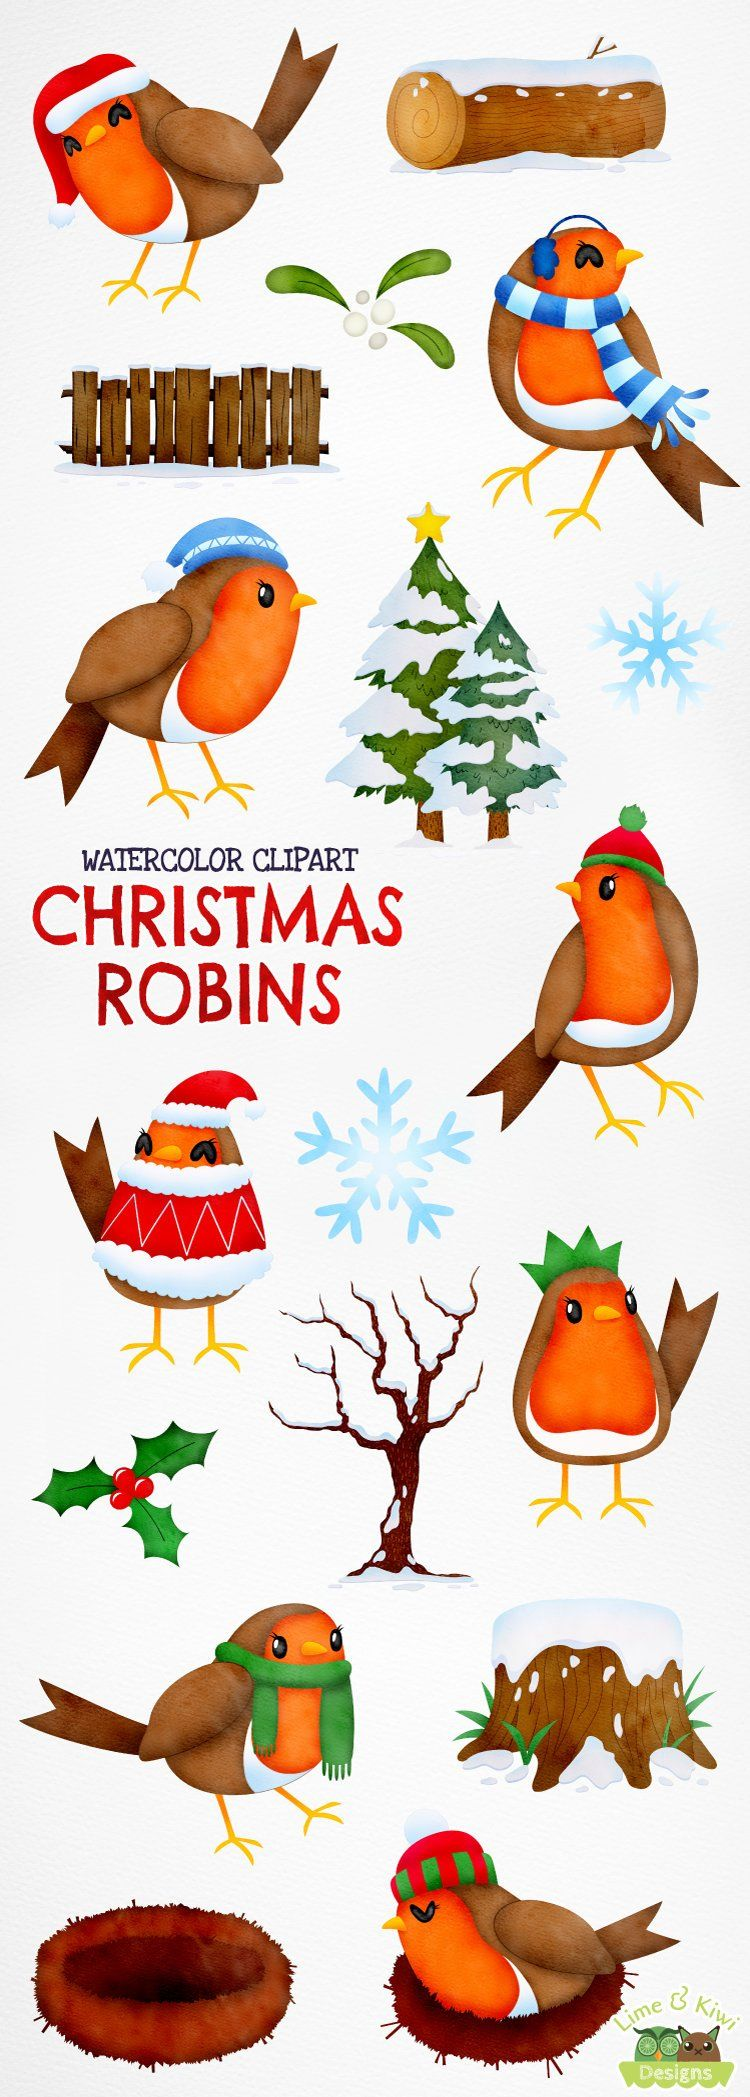 medium resolution of christmas robins watercolor clipart instant download vector etsy